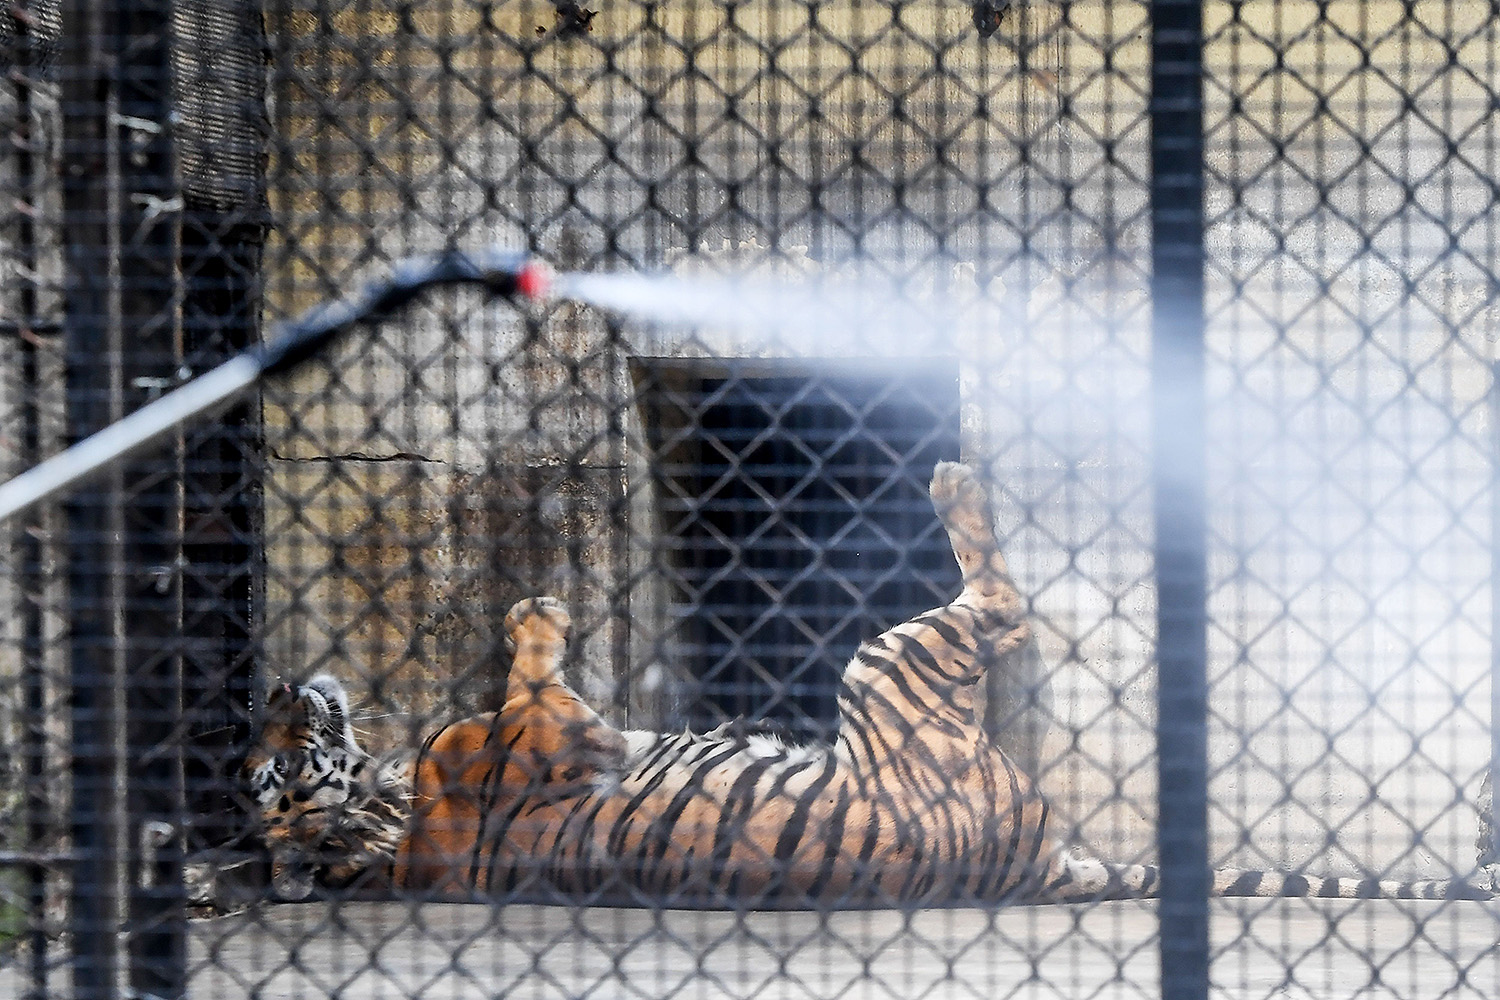 A worker sprays disinfectant near the tiger cages at Alipore Zoological Garden in Kolkata, India, on April 8. A tiger in New York City tested positive for the coronavirus earlier in the week. DIBYANGSHU SARKAR/AFP via Getty Images